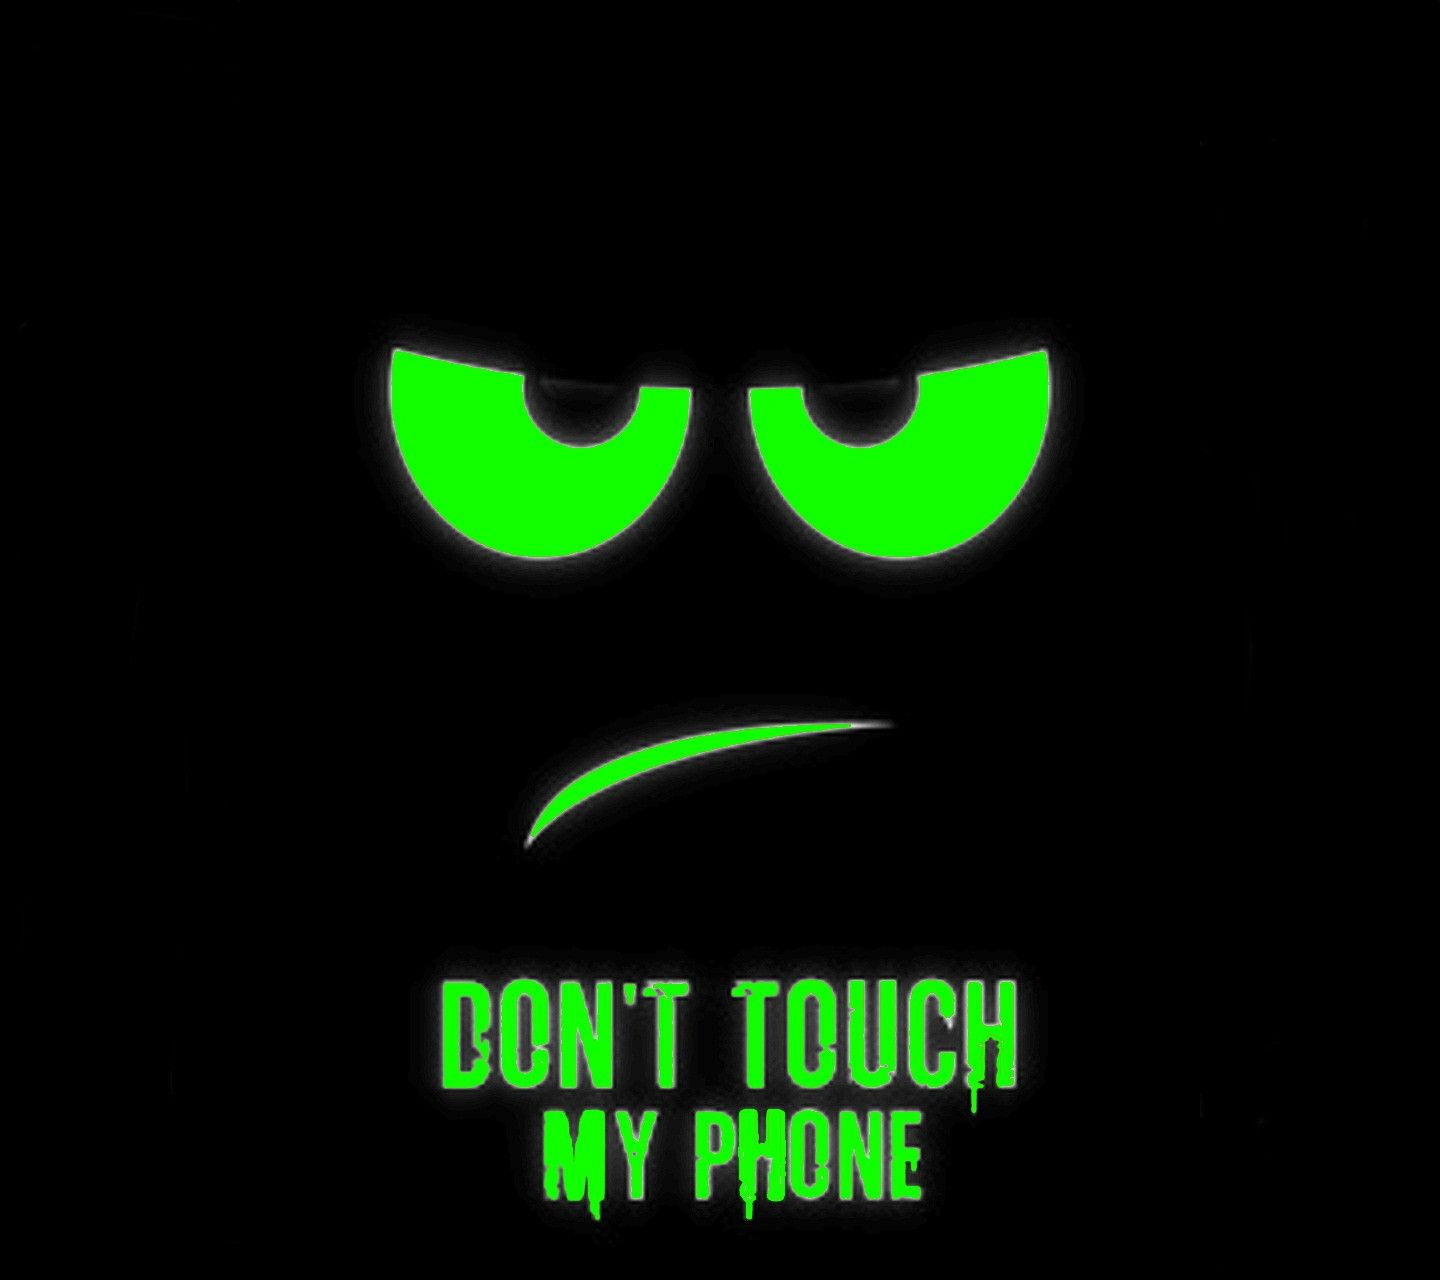 Green screen saver (With images) | Dont touch my phone ...